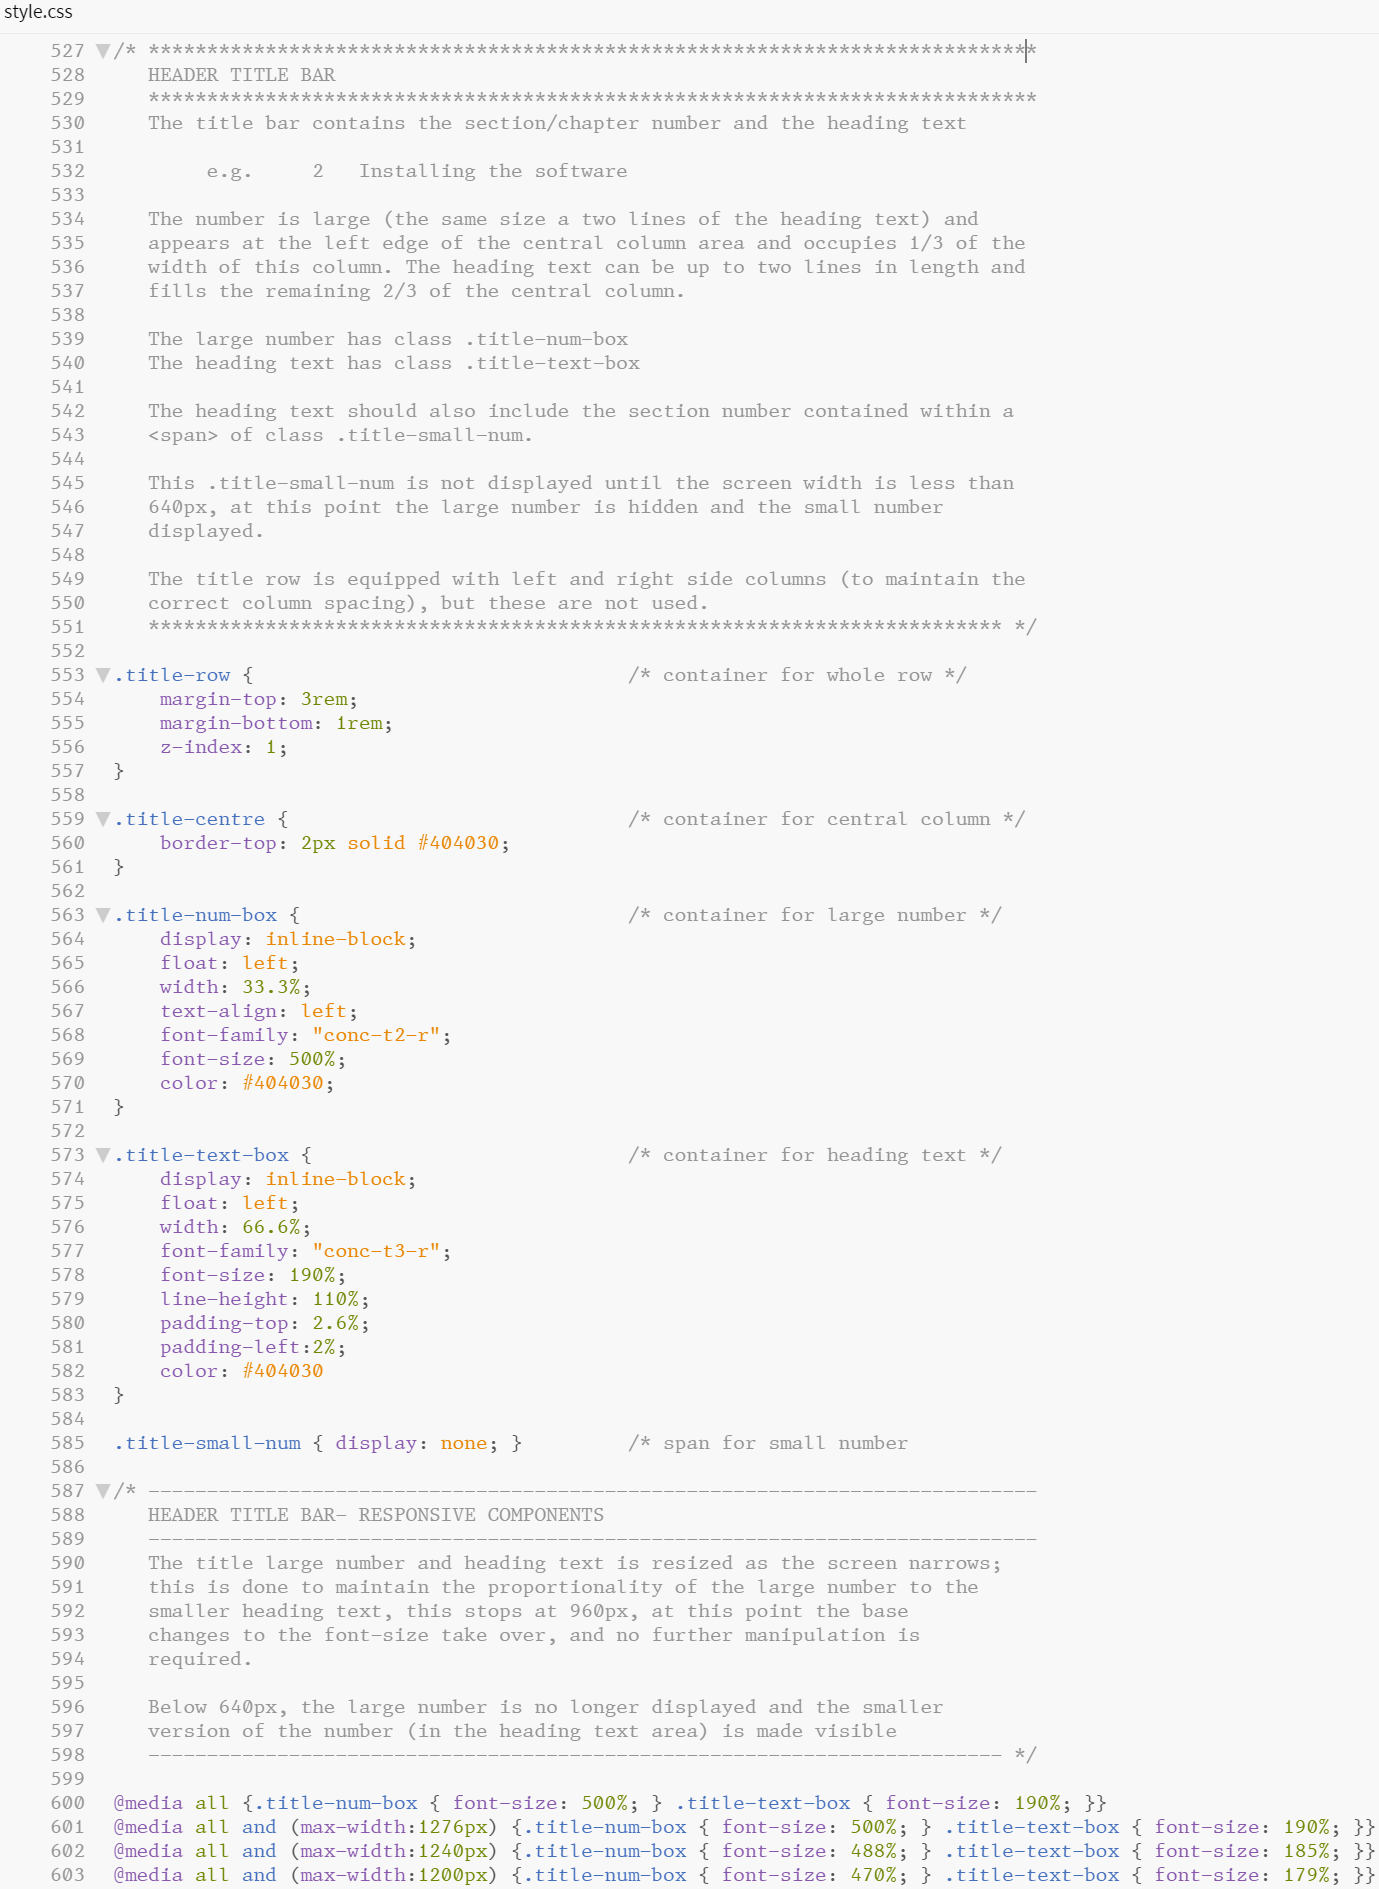 Figure 6.24 - Comments from within a CSS file